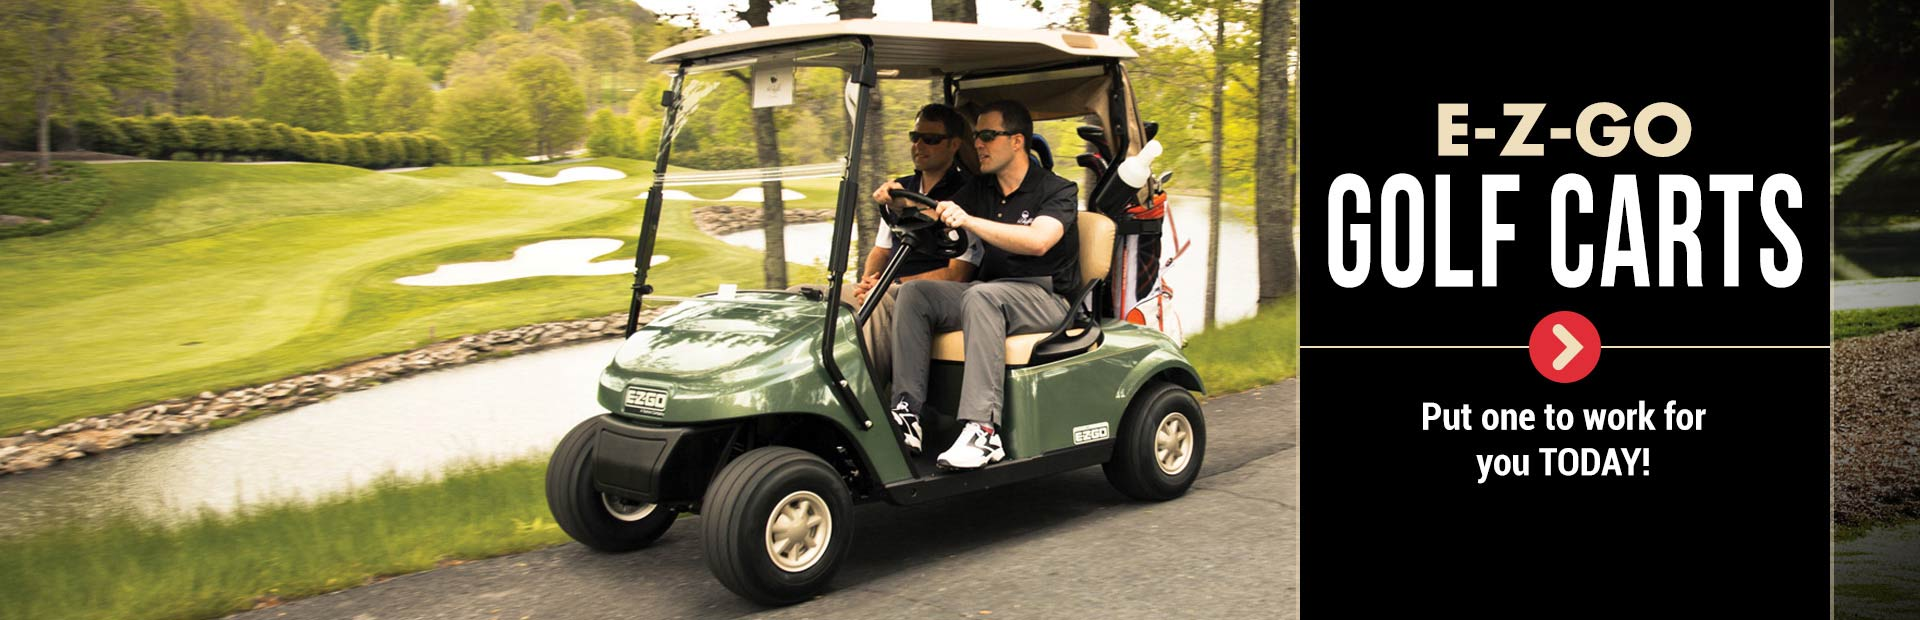 E-Z-GO Golf Carts: Click here to view our selection!